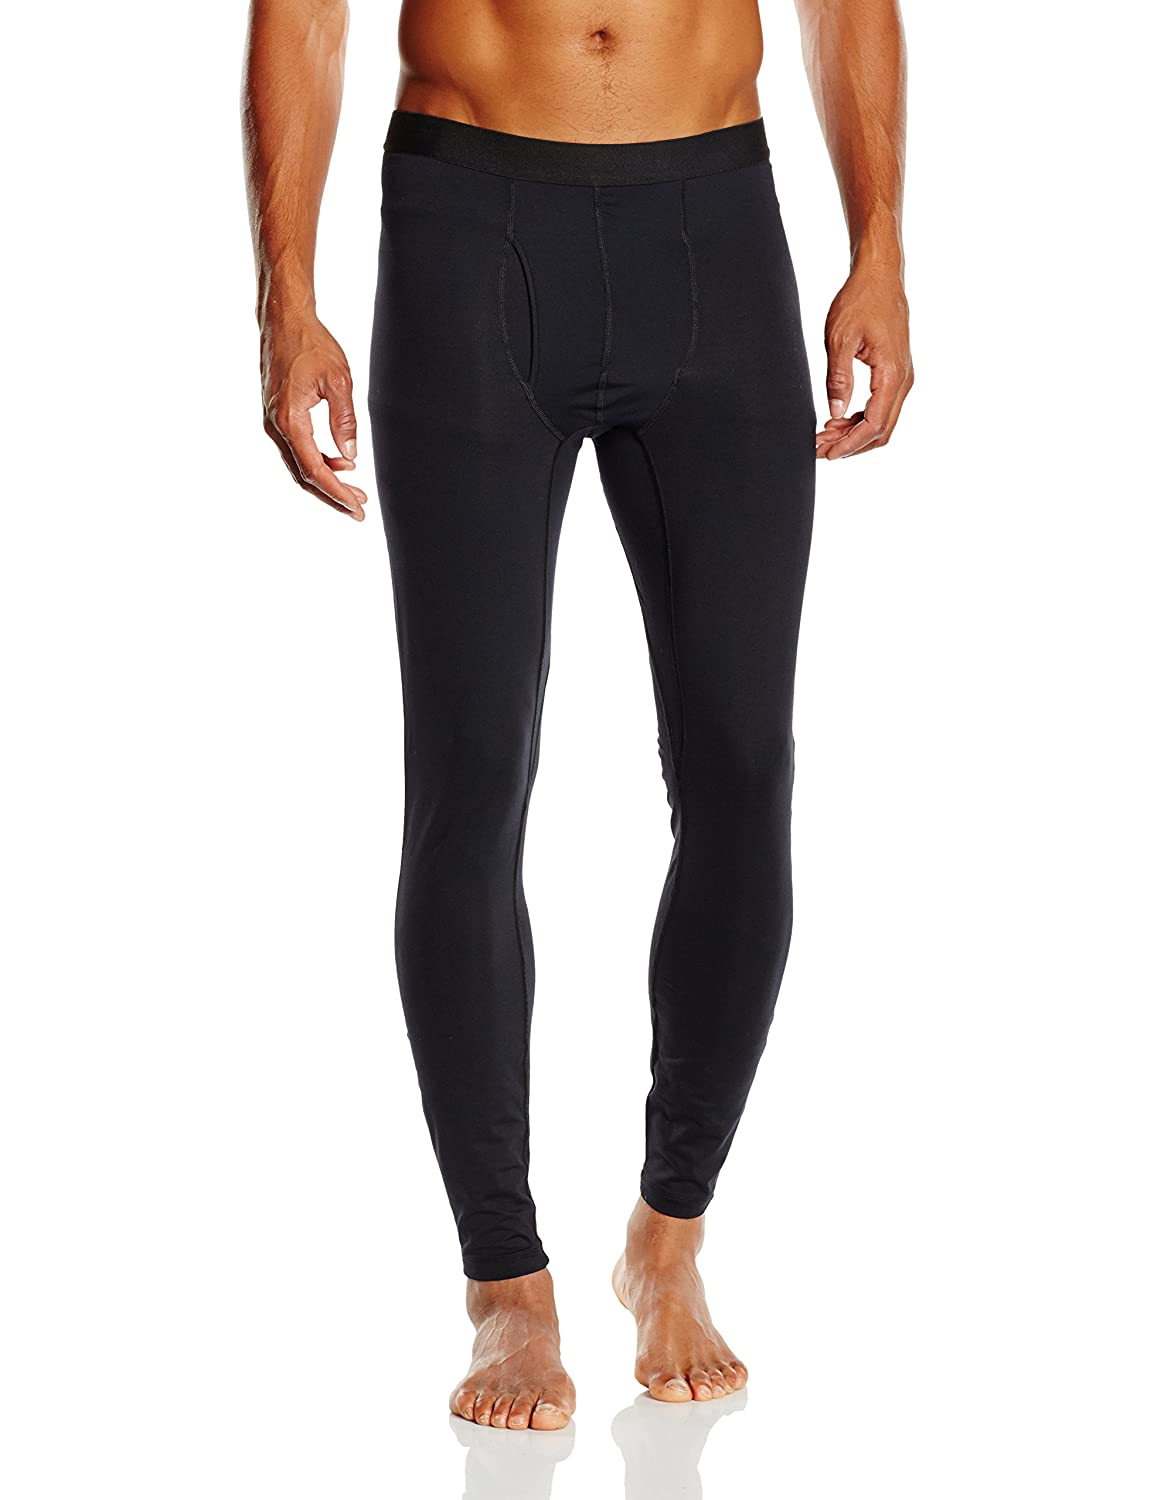 Columbia Men's Midweight Stretch Tight Baselayer Bottom Columbia Sportswear